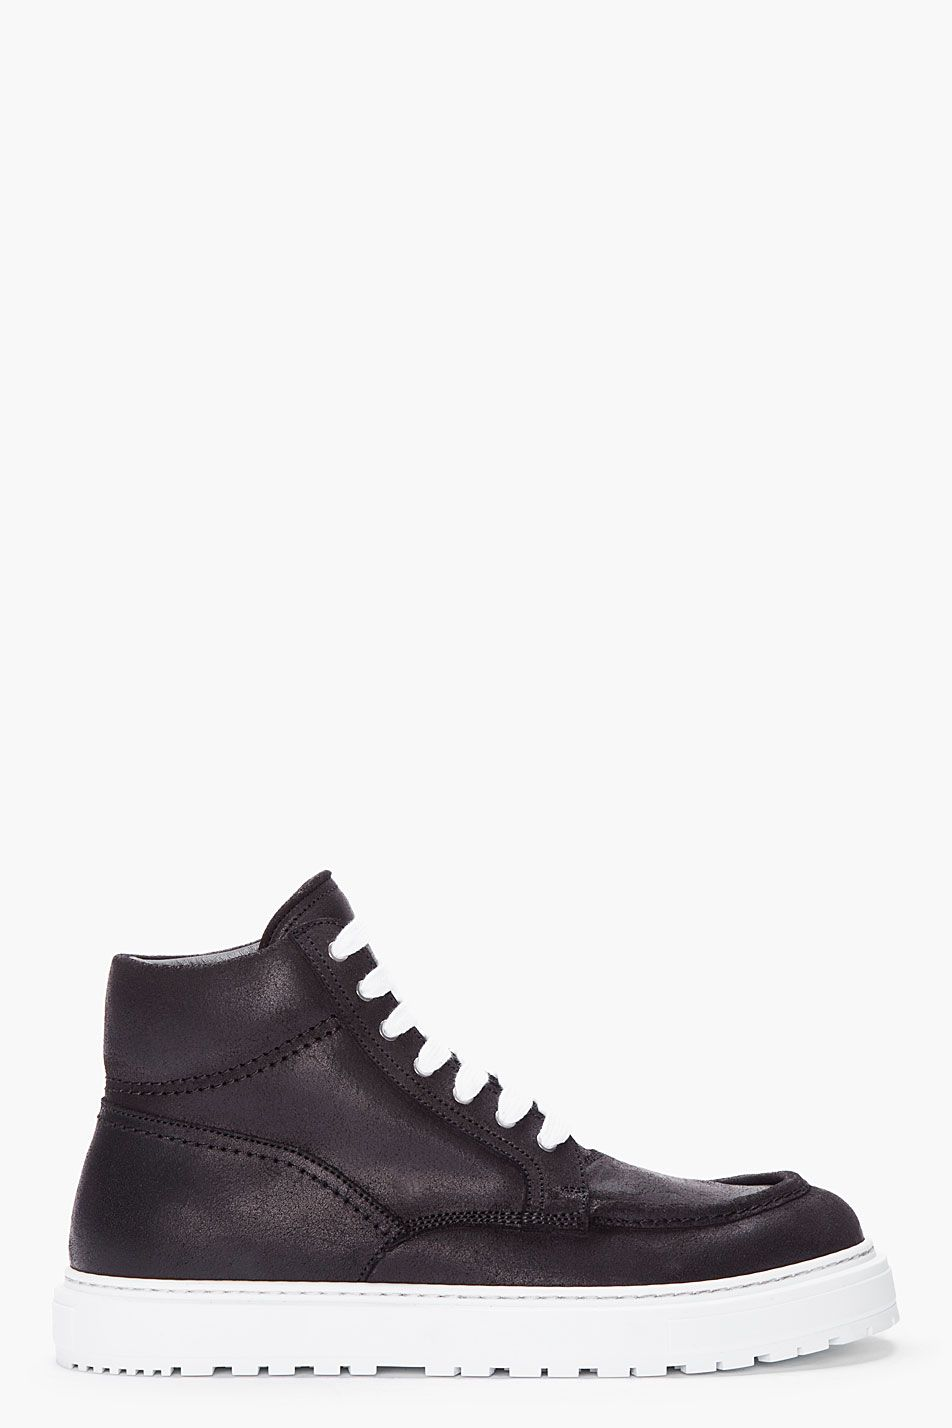 b59fa00d27 Kris Van Assche Black Leather Boat Sneakers in Black for Men